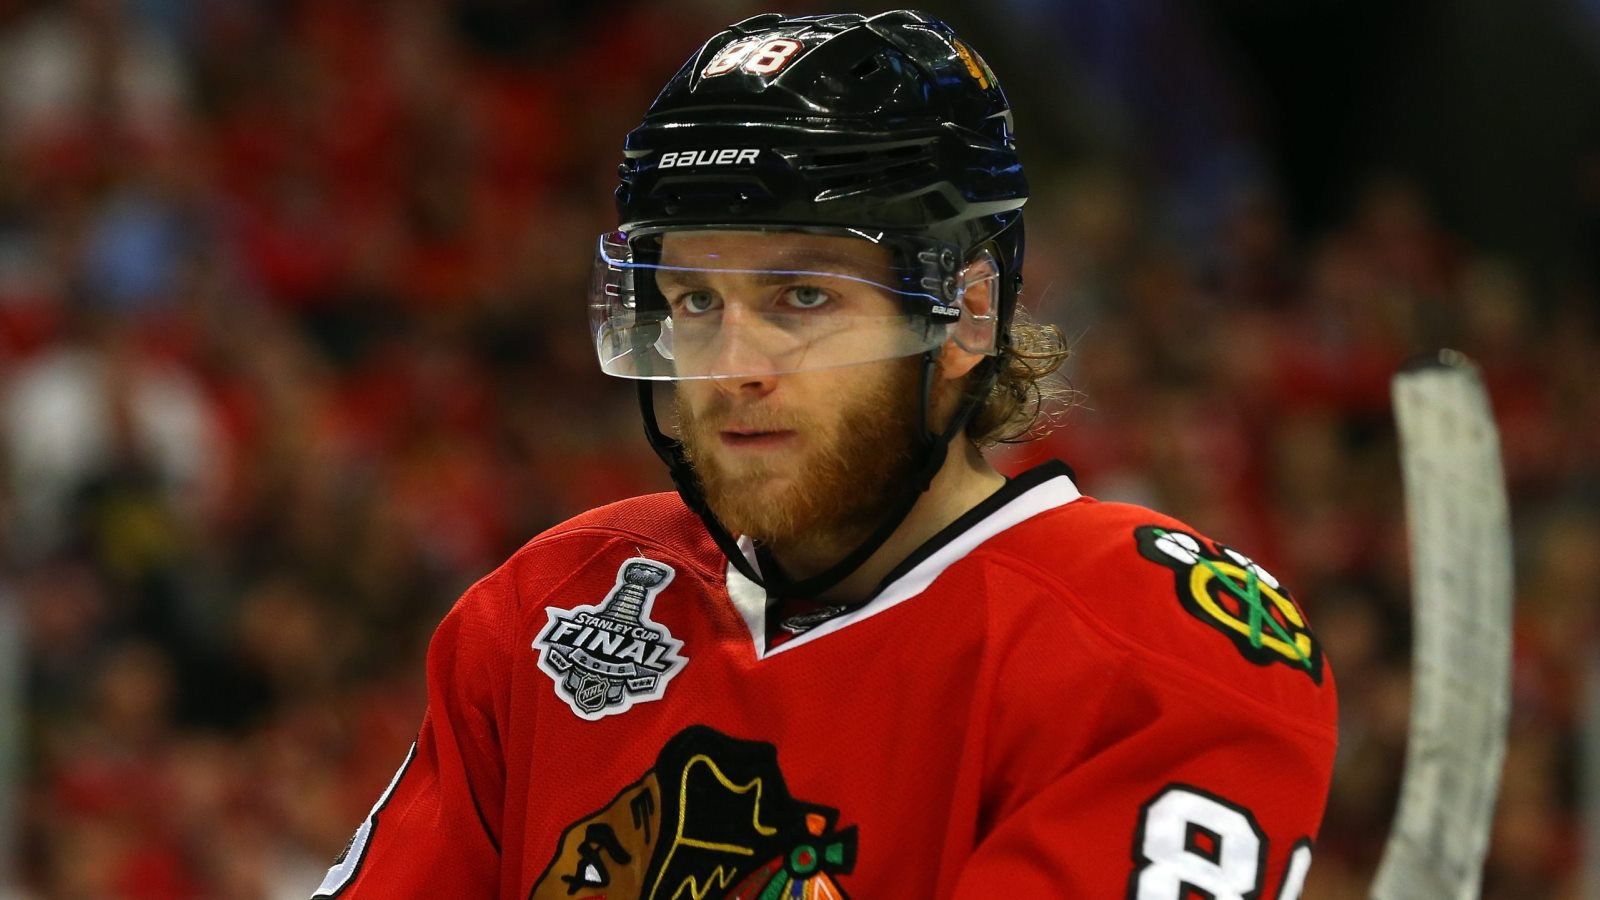 Chicago Blackhawks star Patrick Kane, who has a home in Hamburg, is reportly being investigated by police.